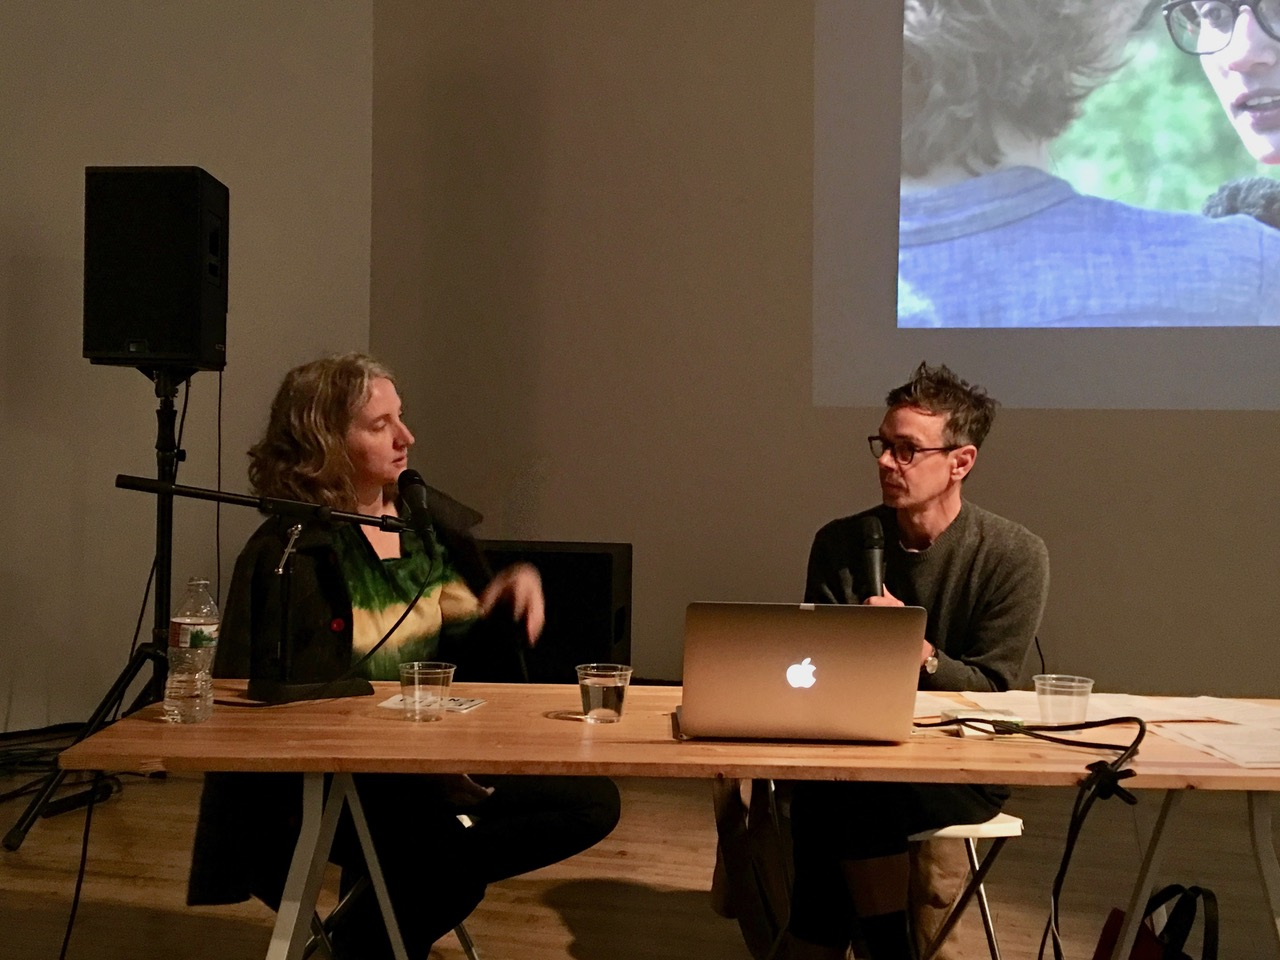 Sharon Hayes in conversation with James Voorhies, March 5, 2018. The Lab, San Francisco.